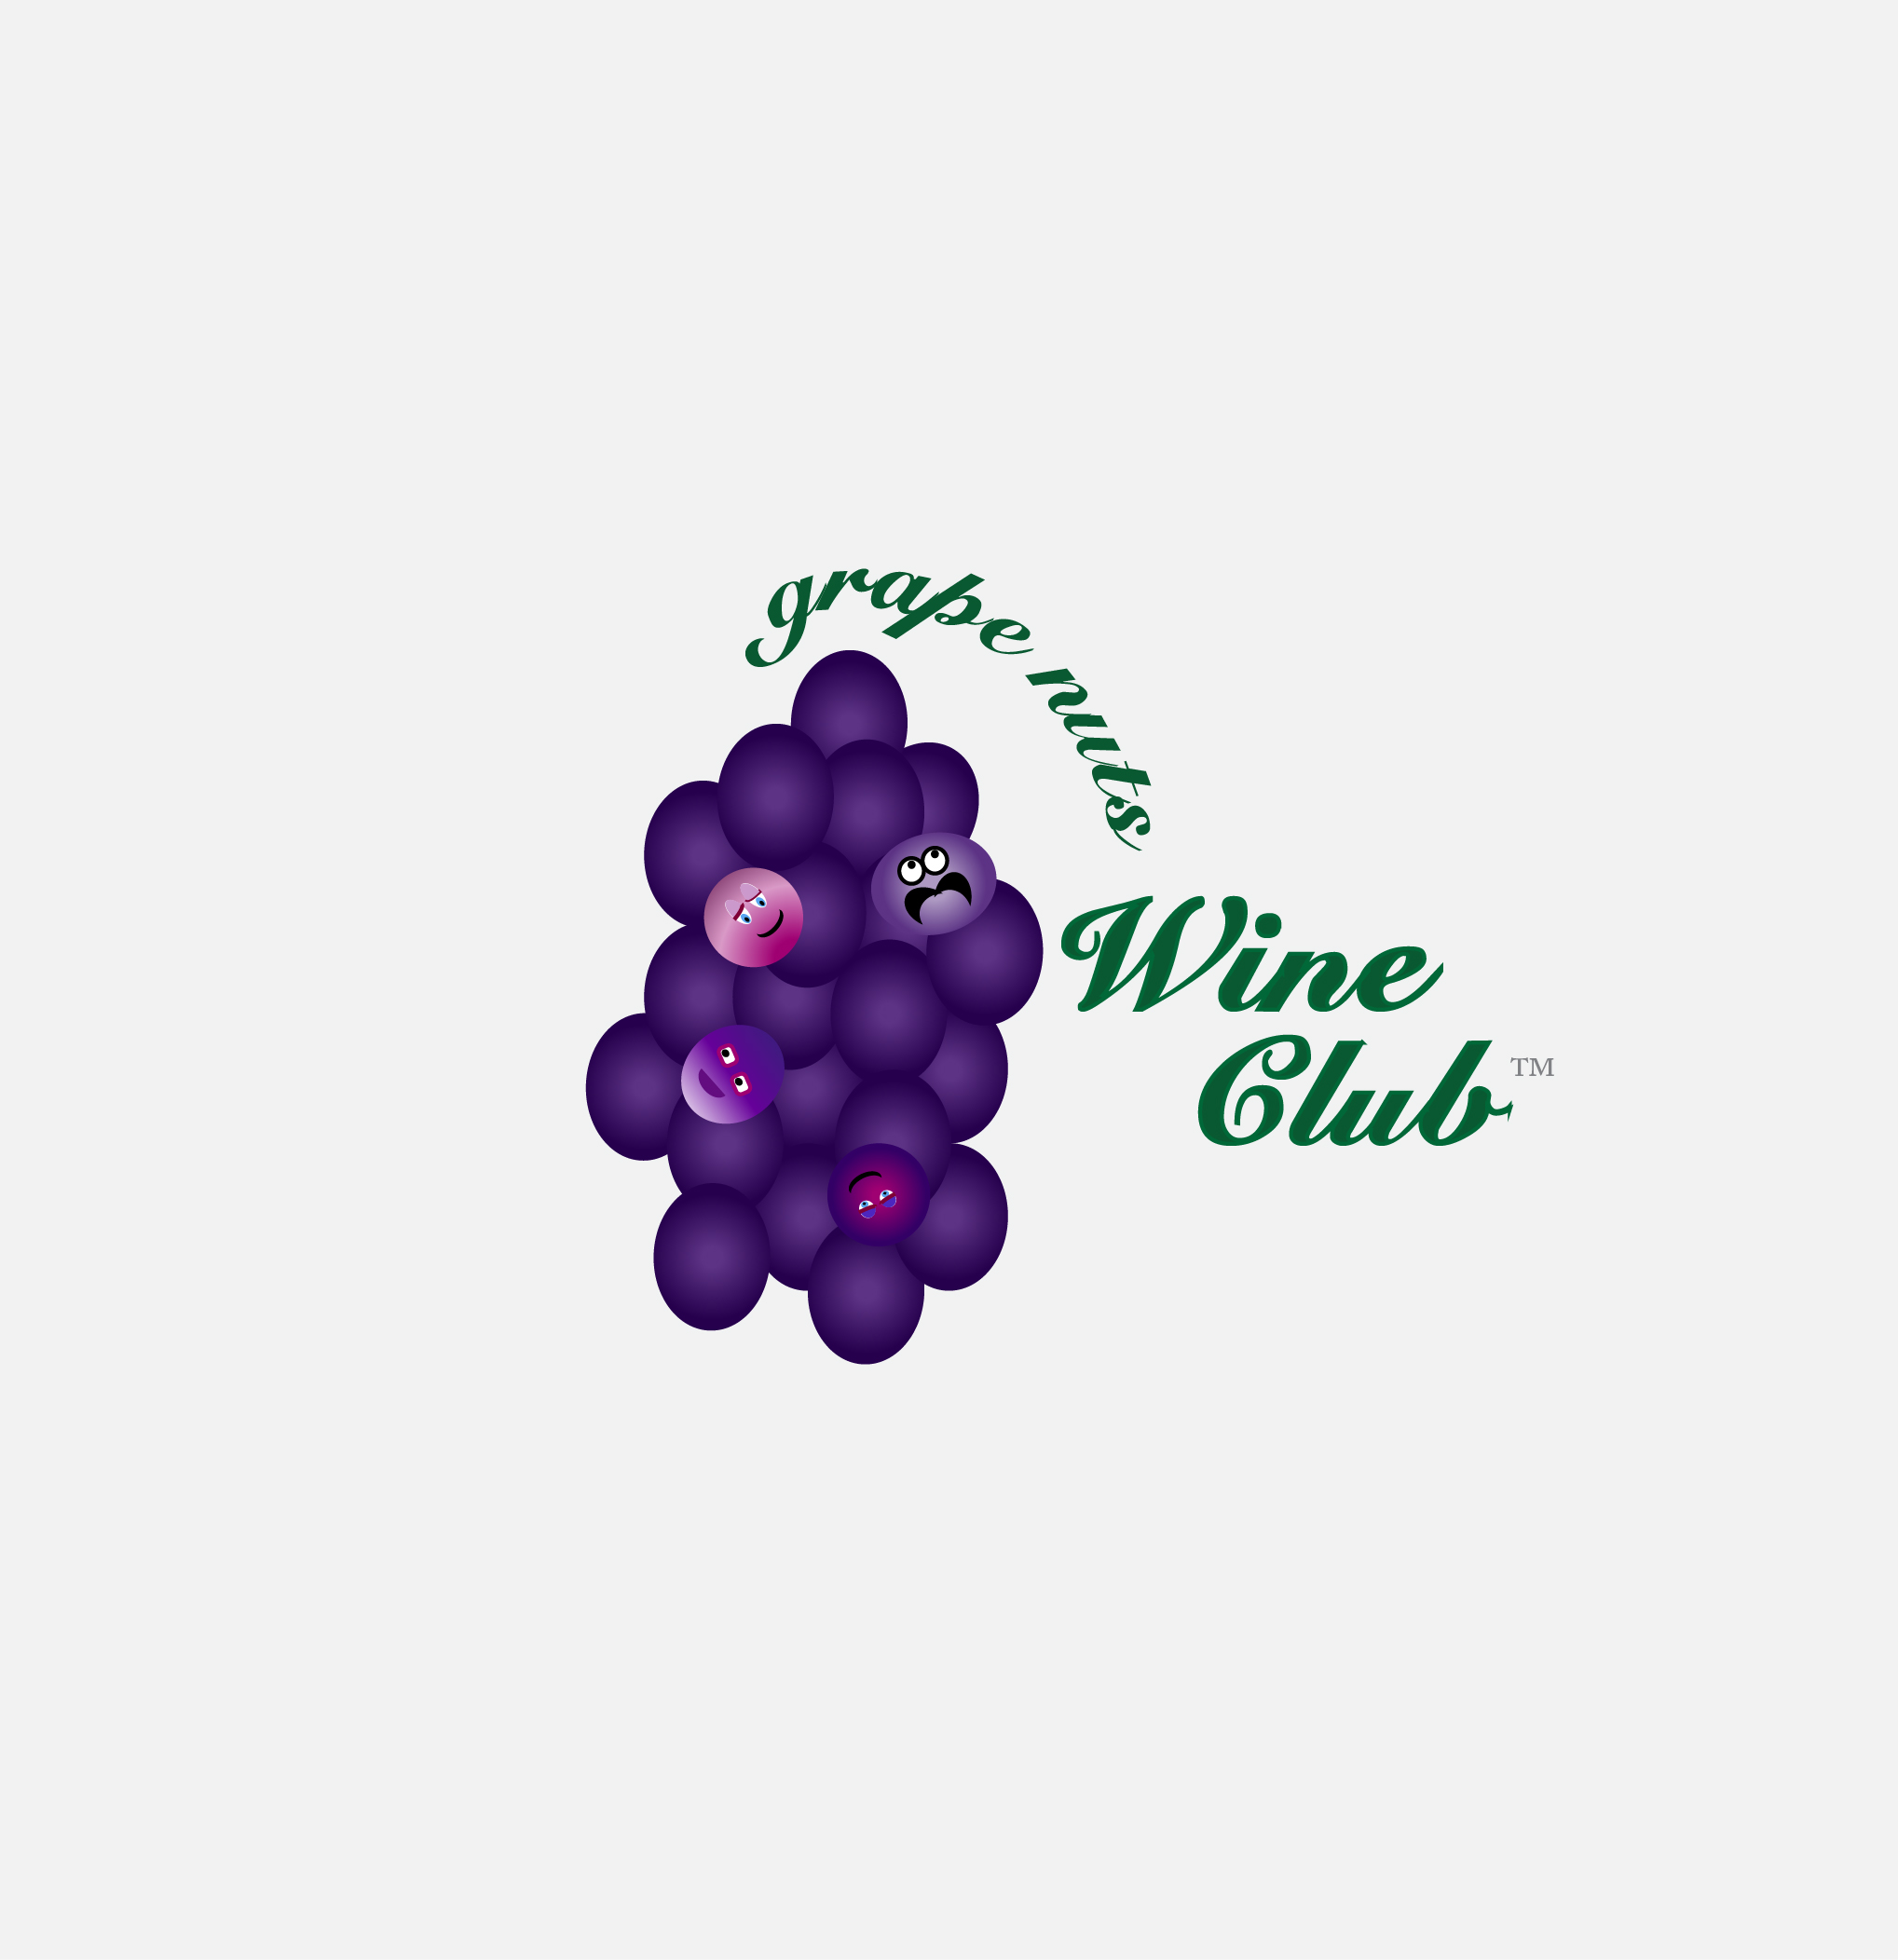 Logo Design by Nancy Grant - Entry No. 73 in the Logo Design Contest Artistic Logo Design for Grape Nuts Wine Club.